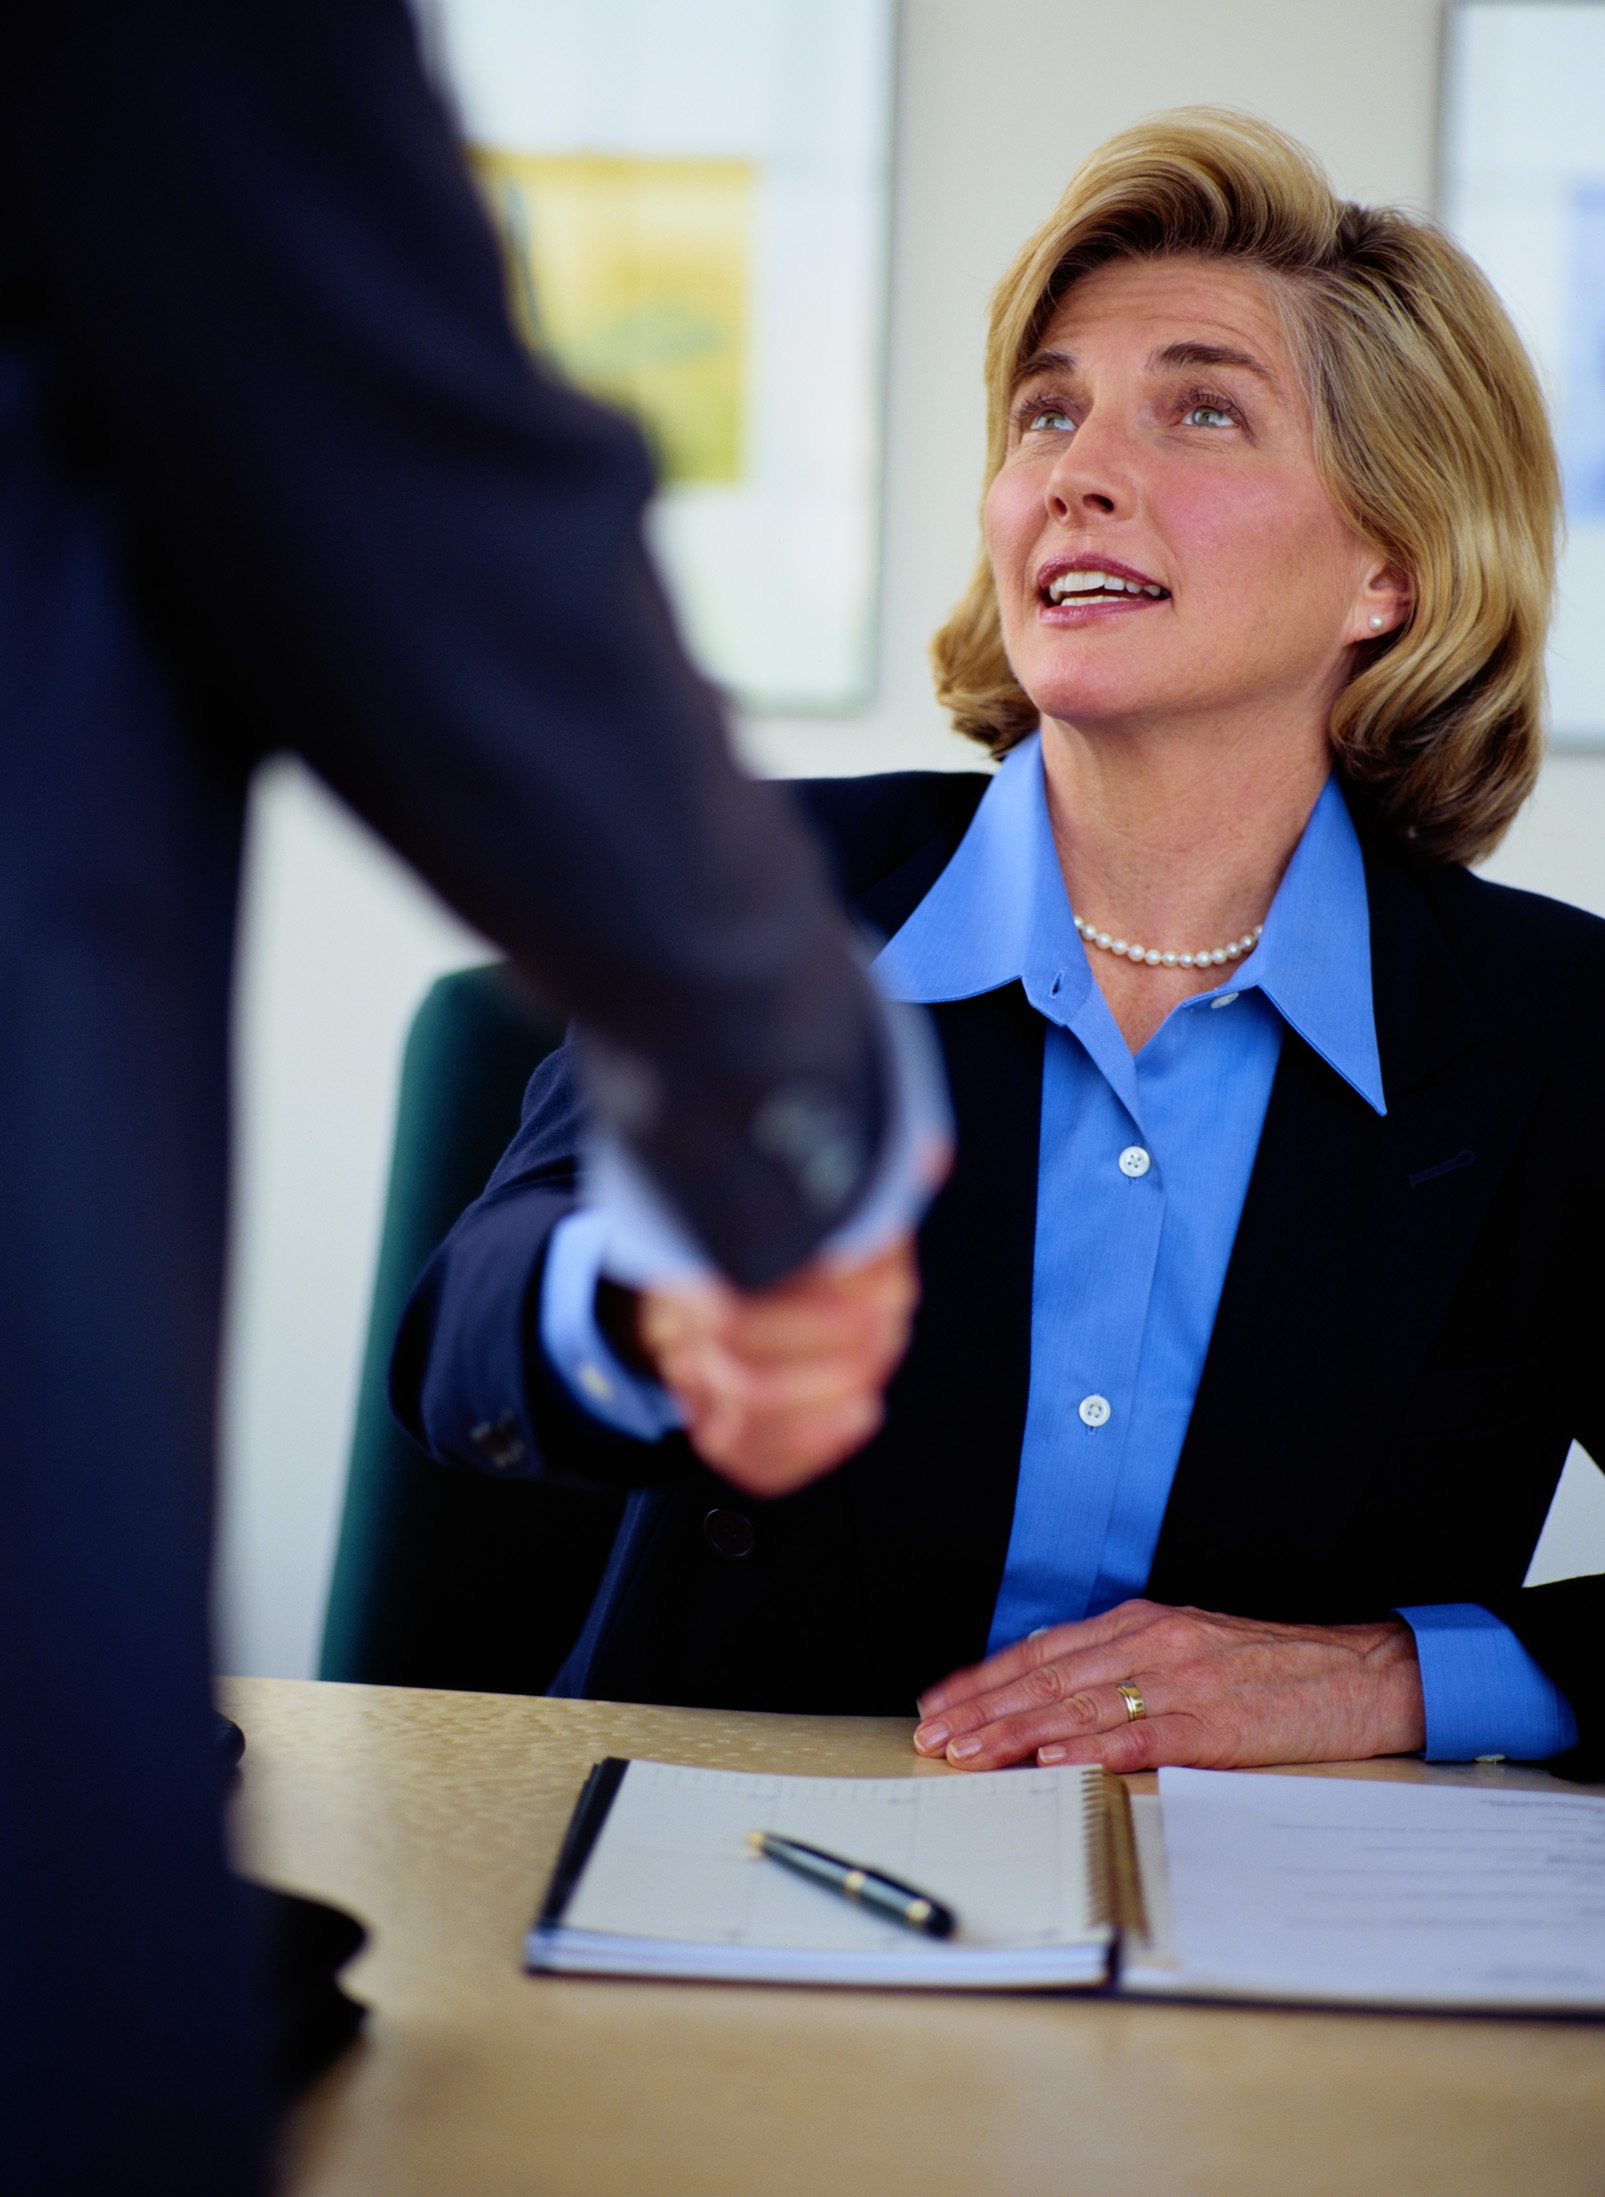 14 ways to generate more referrals via business networking (Part 2)